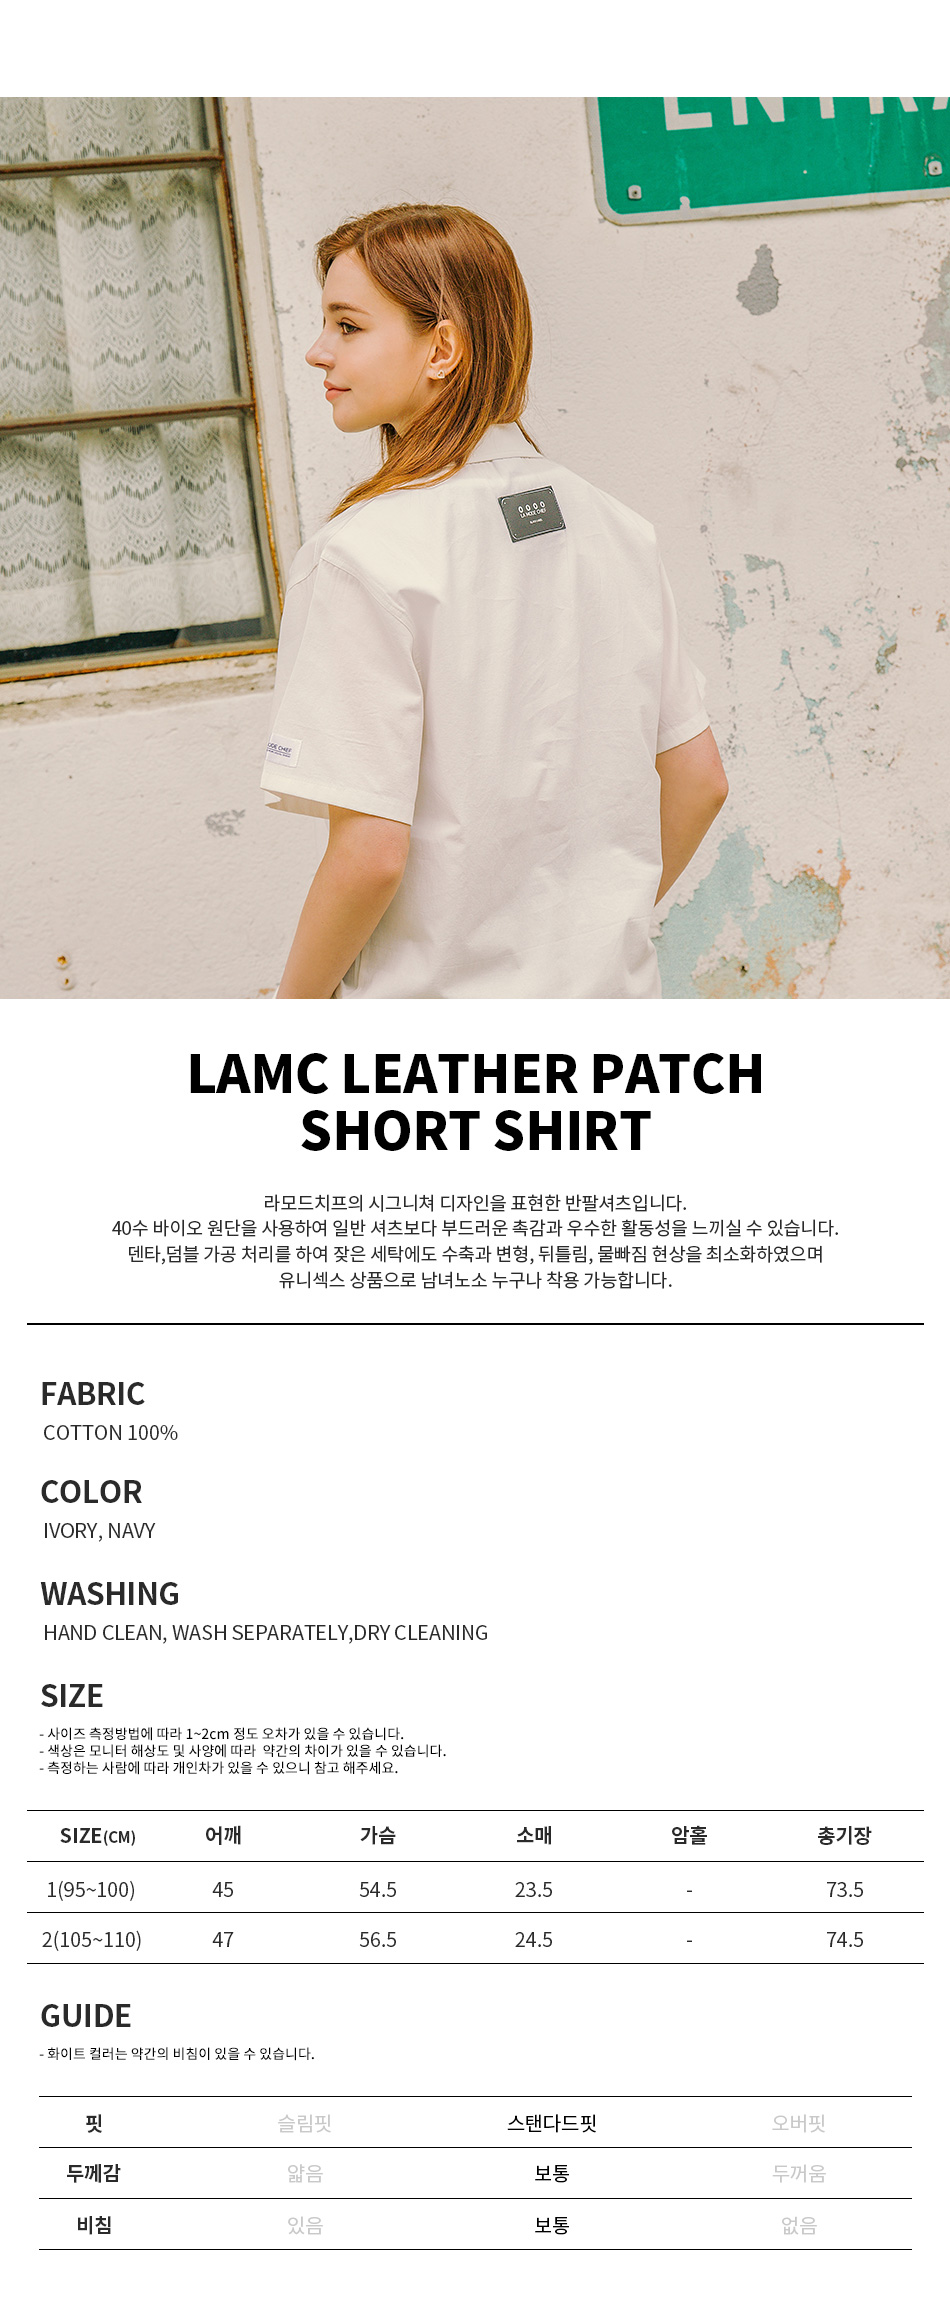 라모드치프 LAMC LEATHER PATCH SHORT SHIRT (IVORY)